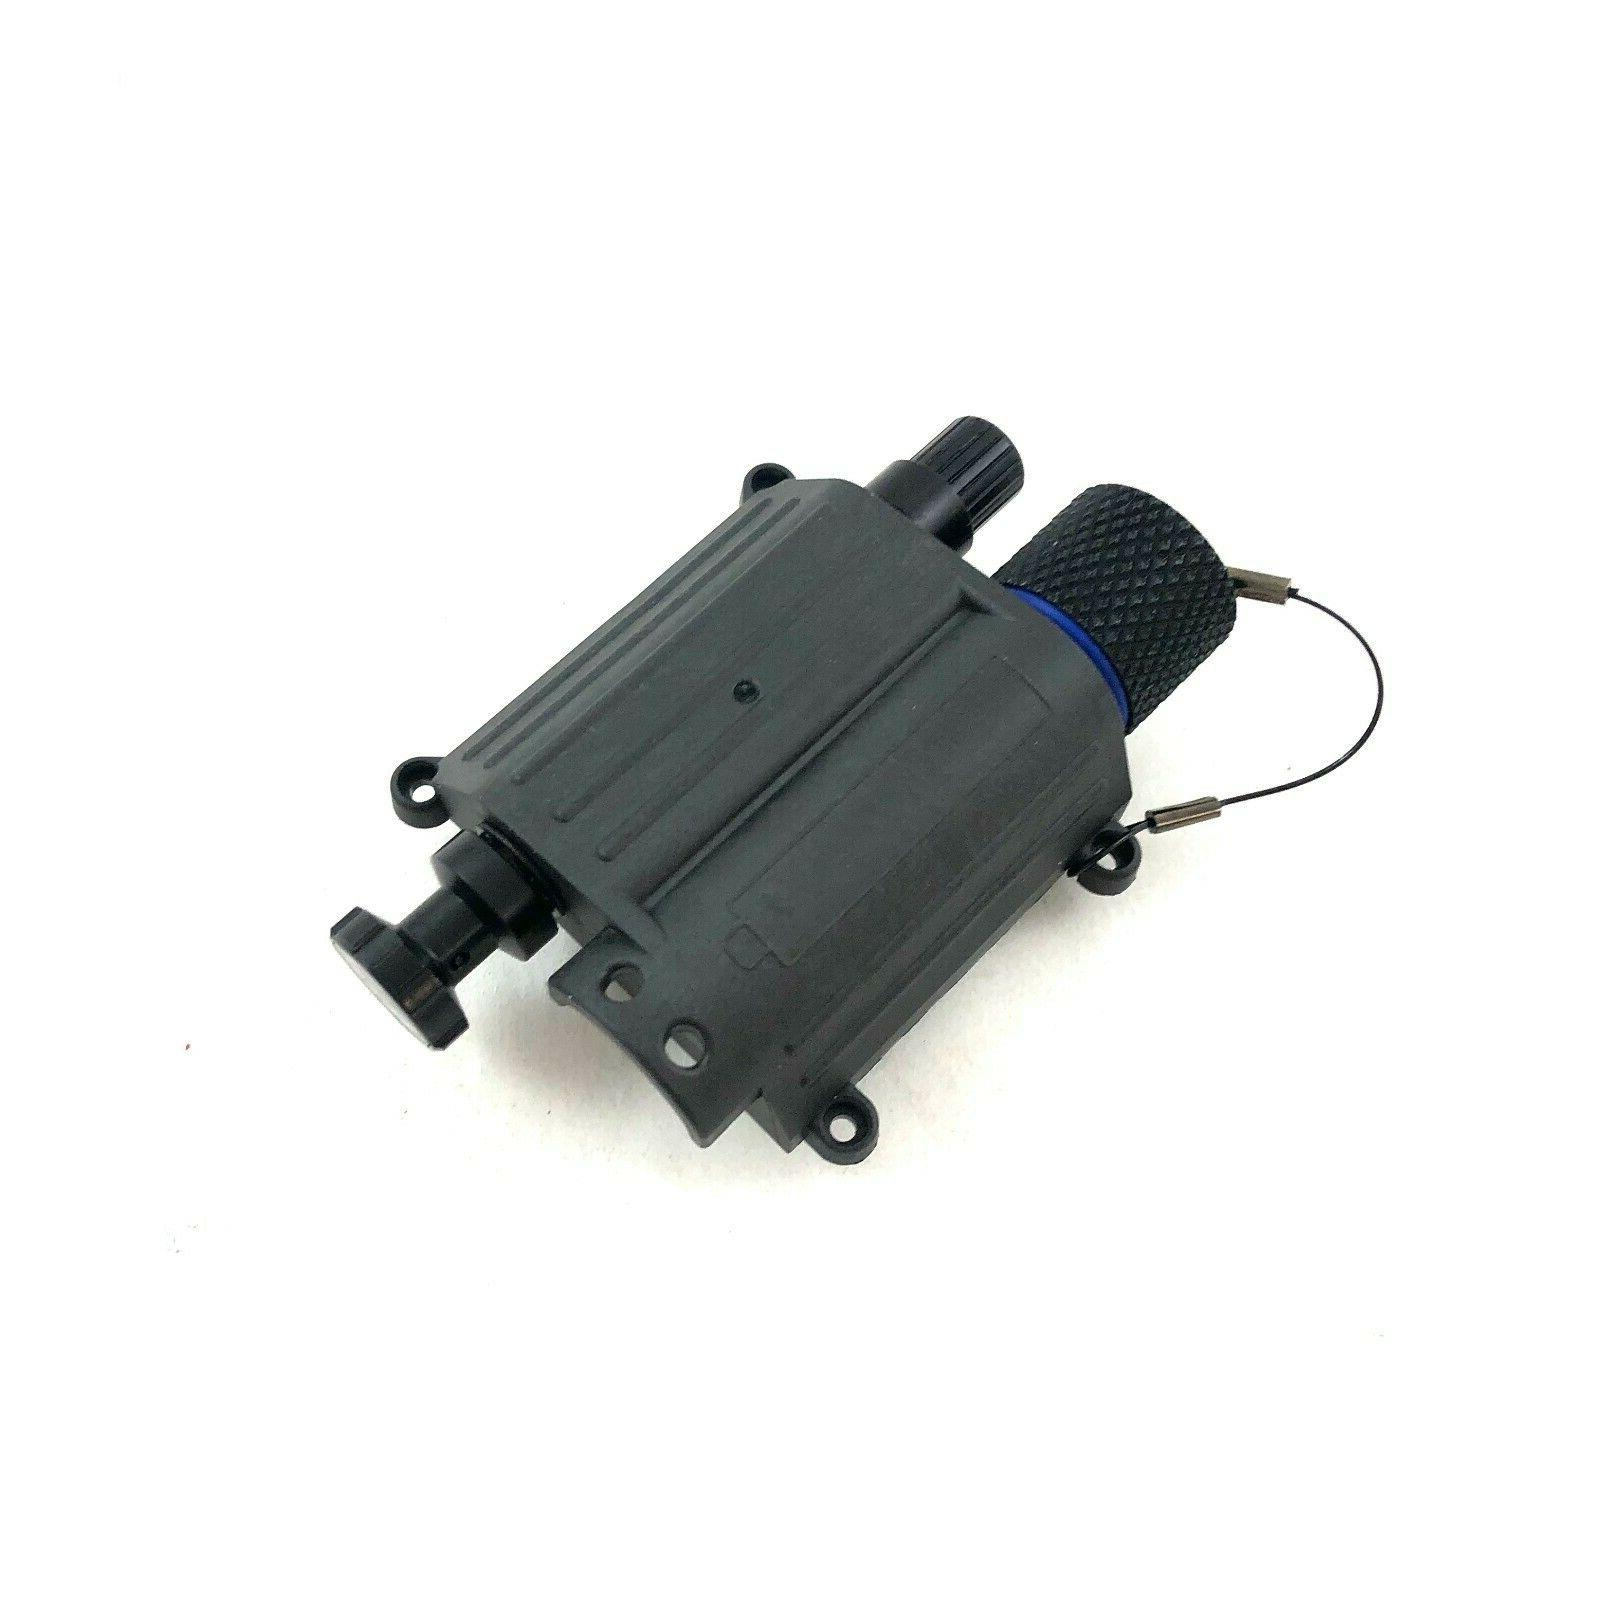 an pvs 14 nvg battery compartment pack